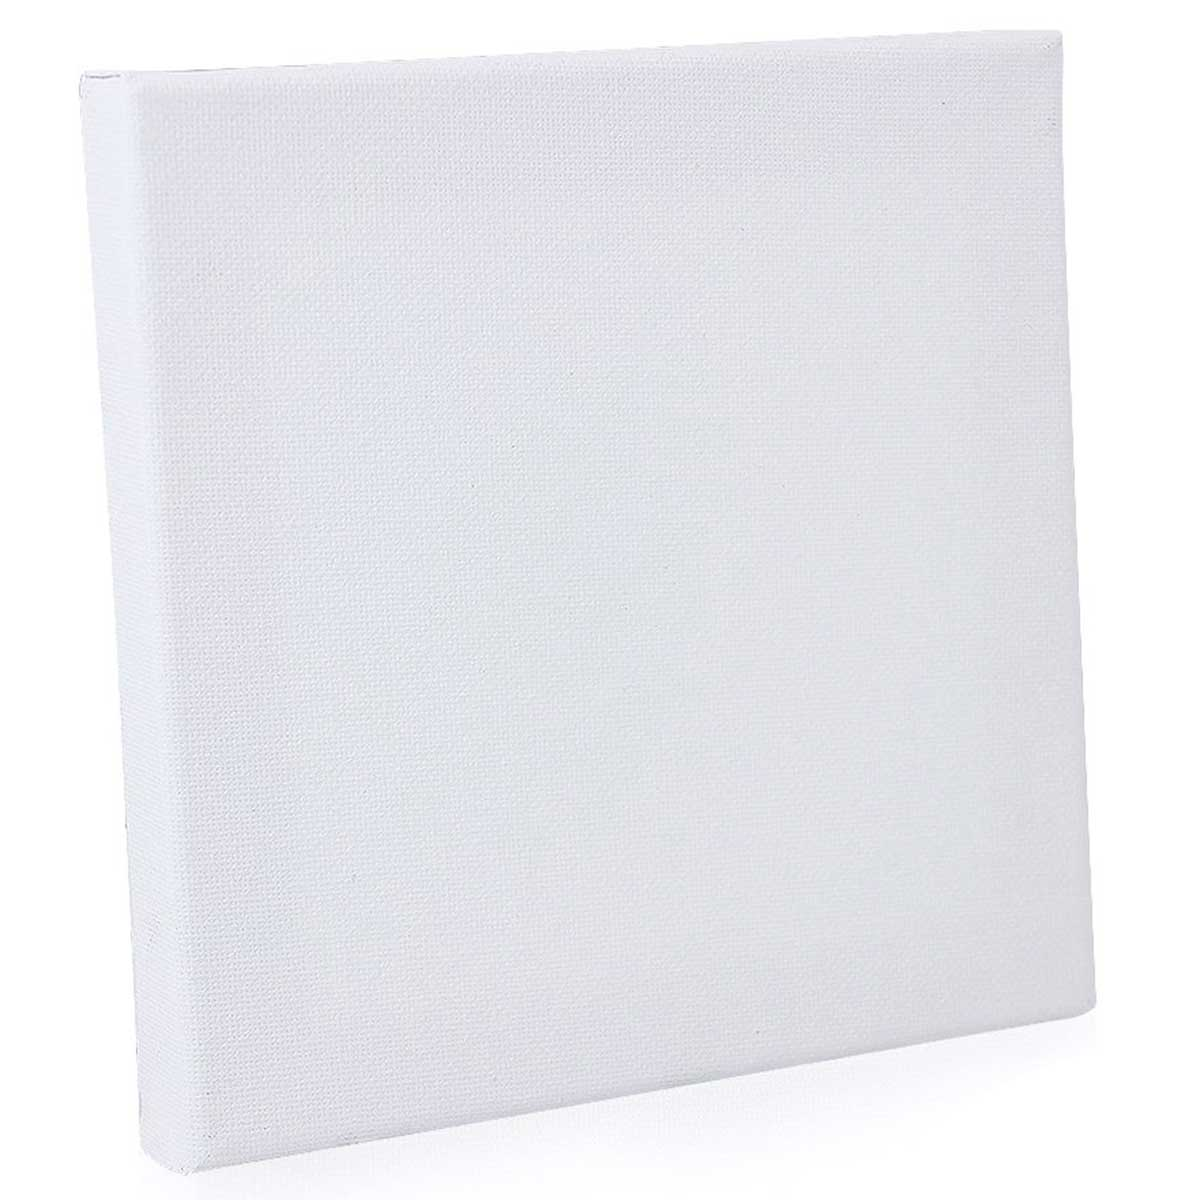 Stretched Canvas Board (12X12 Inch)